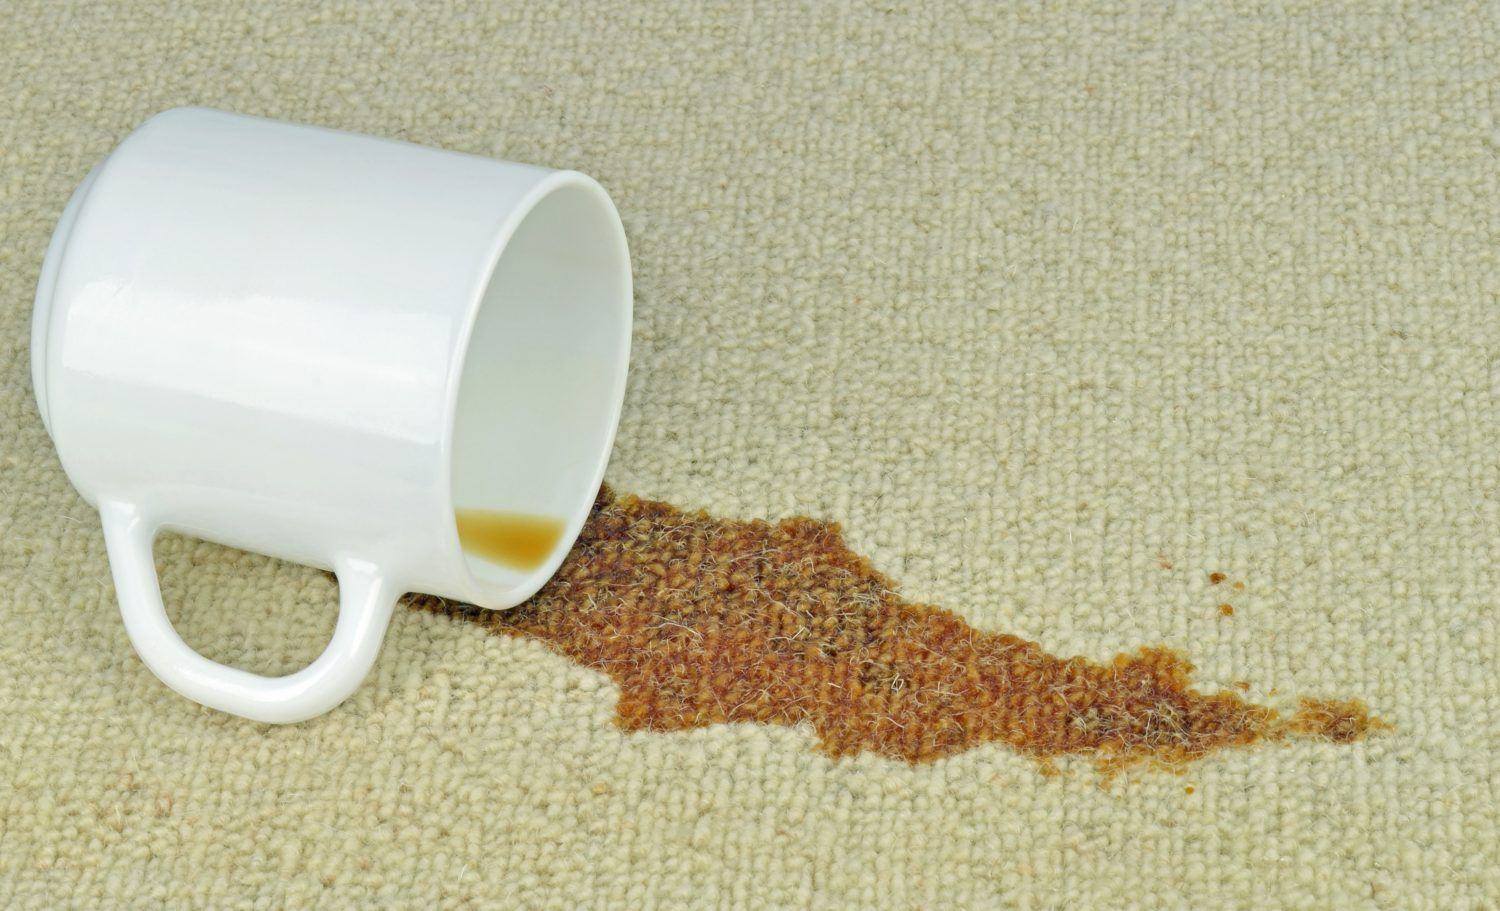 6 easy ways to remove coffee stains because coffee spills